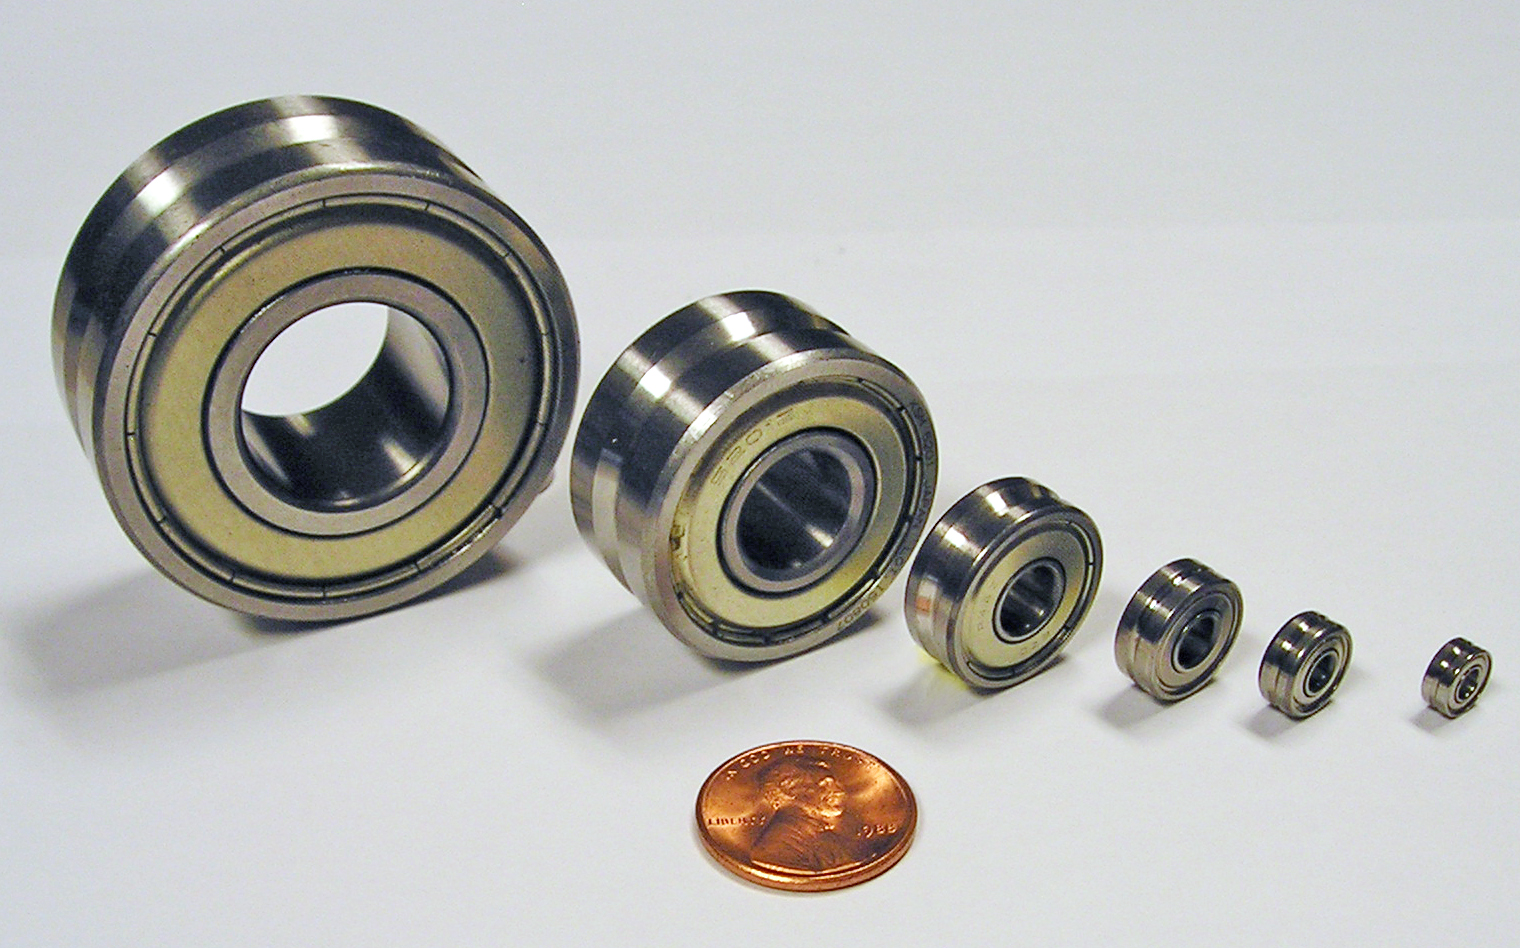 Wire Straightener Bearings and Wire Straightener Accessories